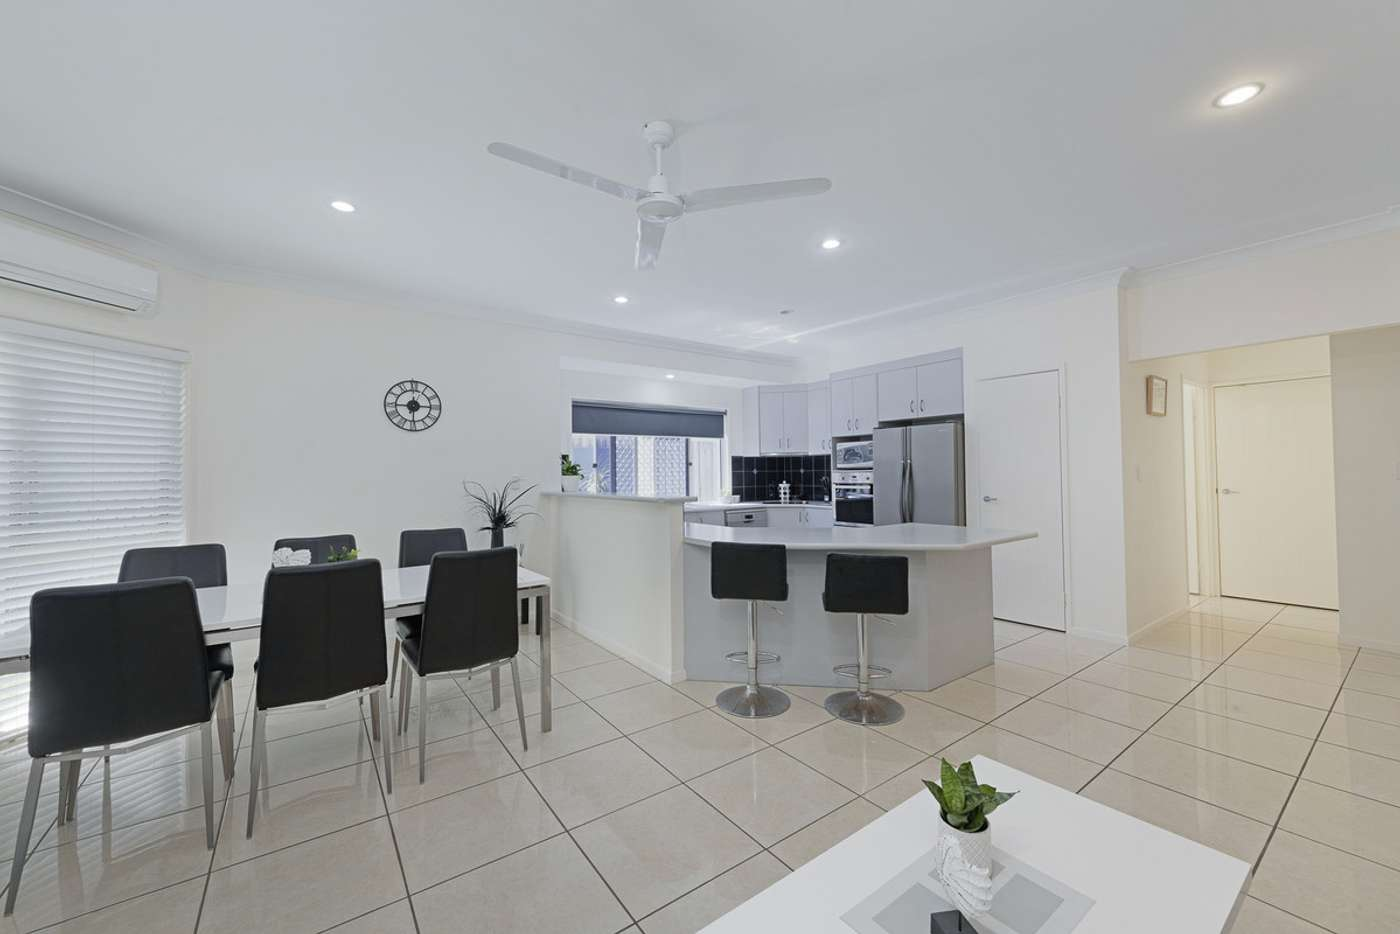 Seventh view of Homely house listing, 14 Brandon Court, Coral Cove QLD 4670